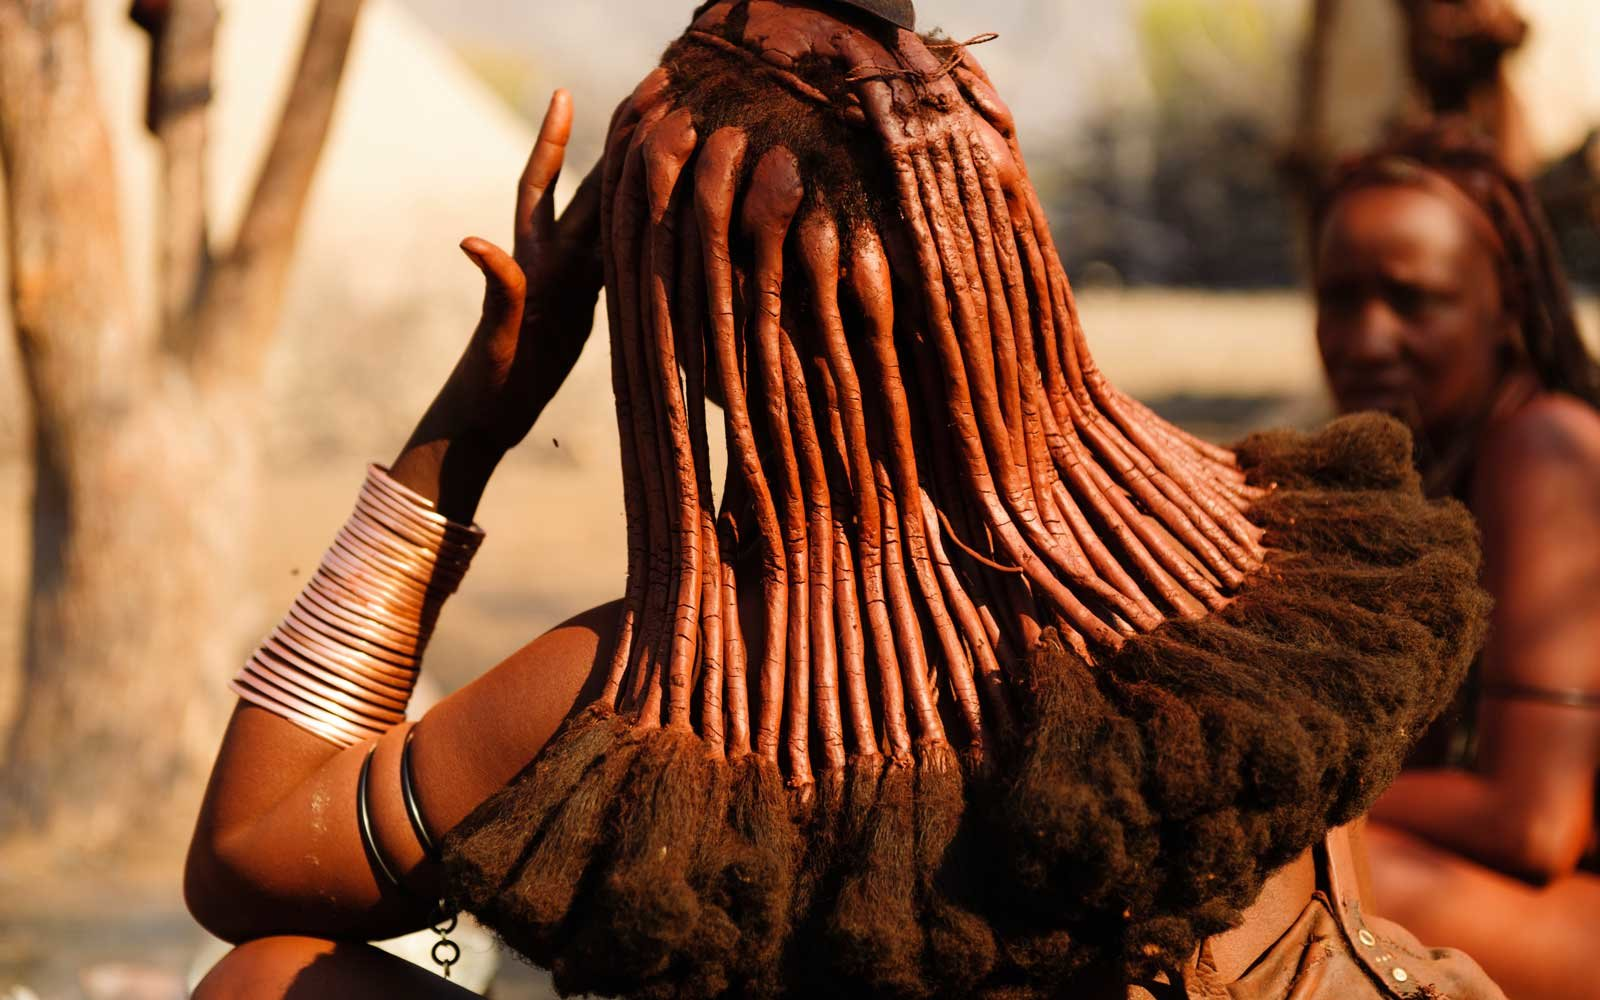 An Himba woman seen from the back with close up on her traditional mud-covered braids